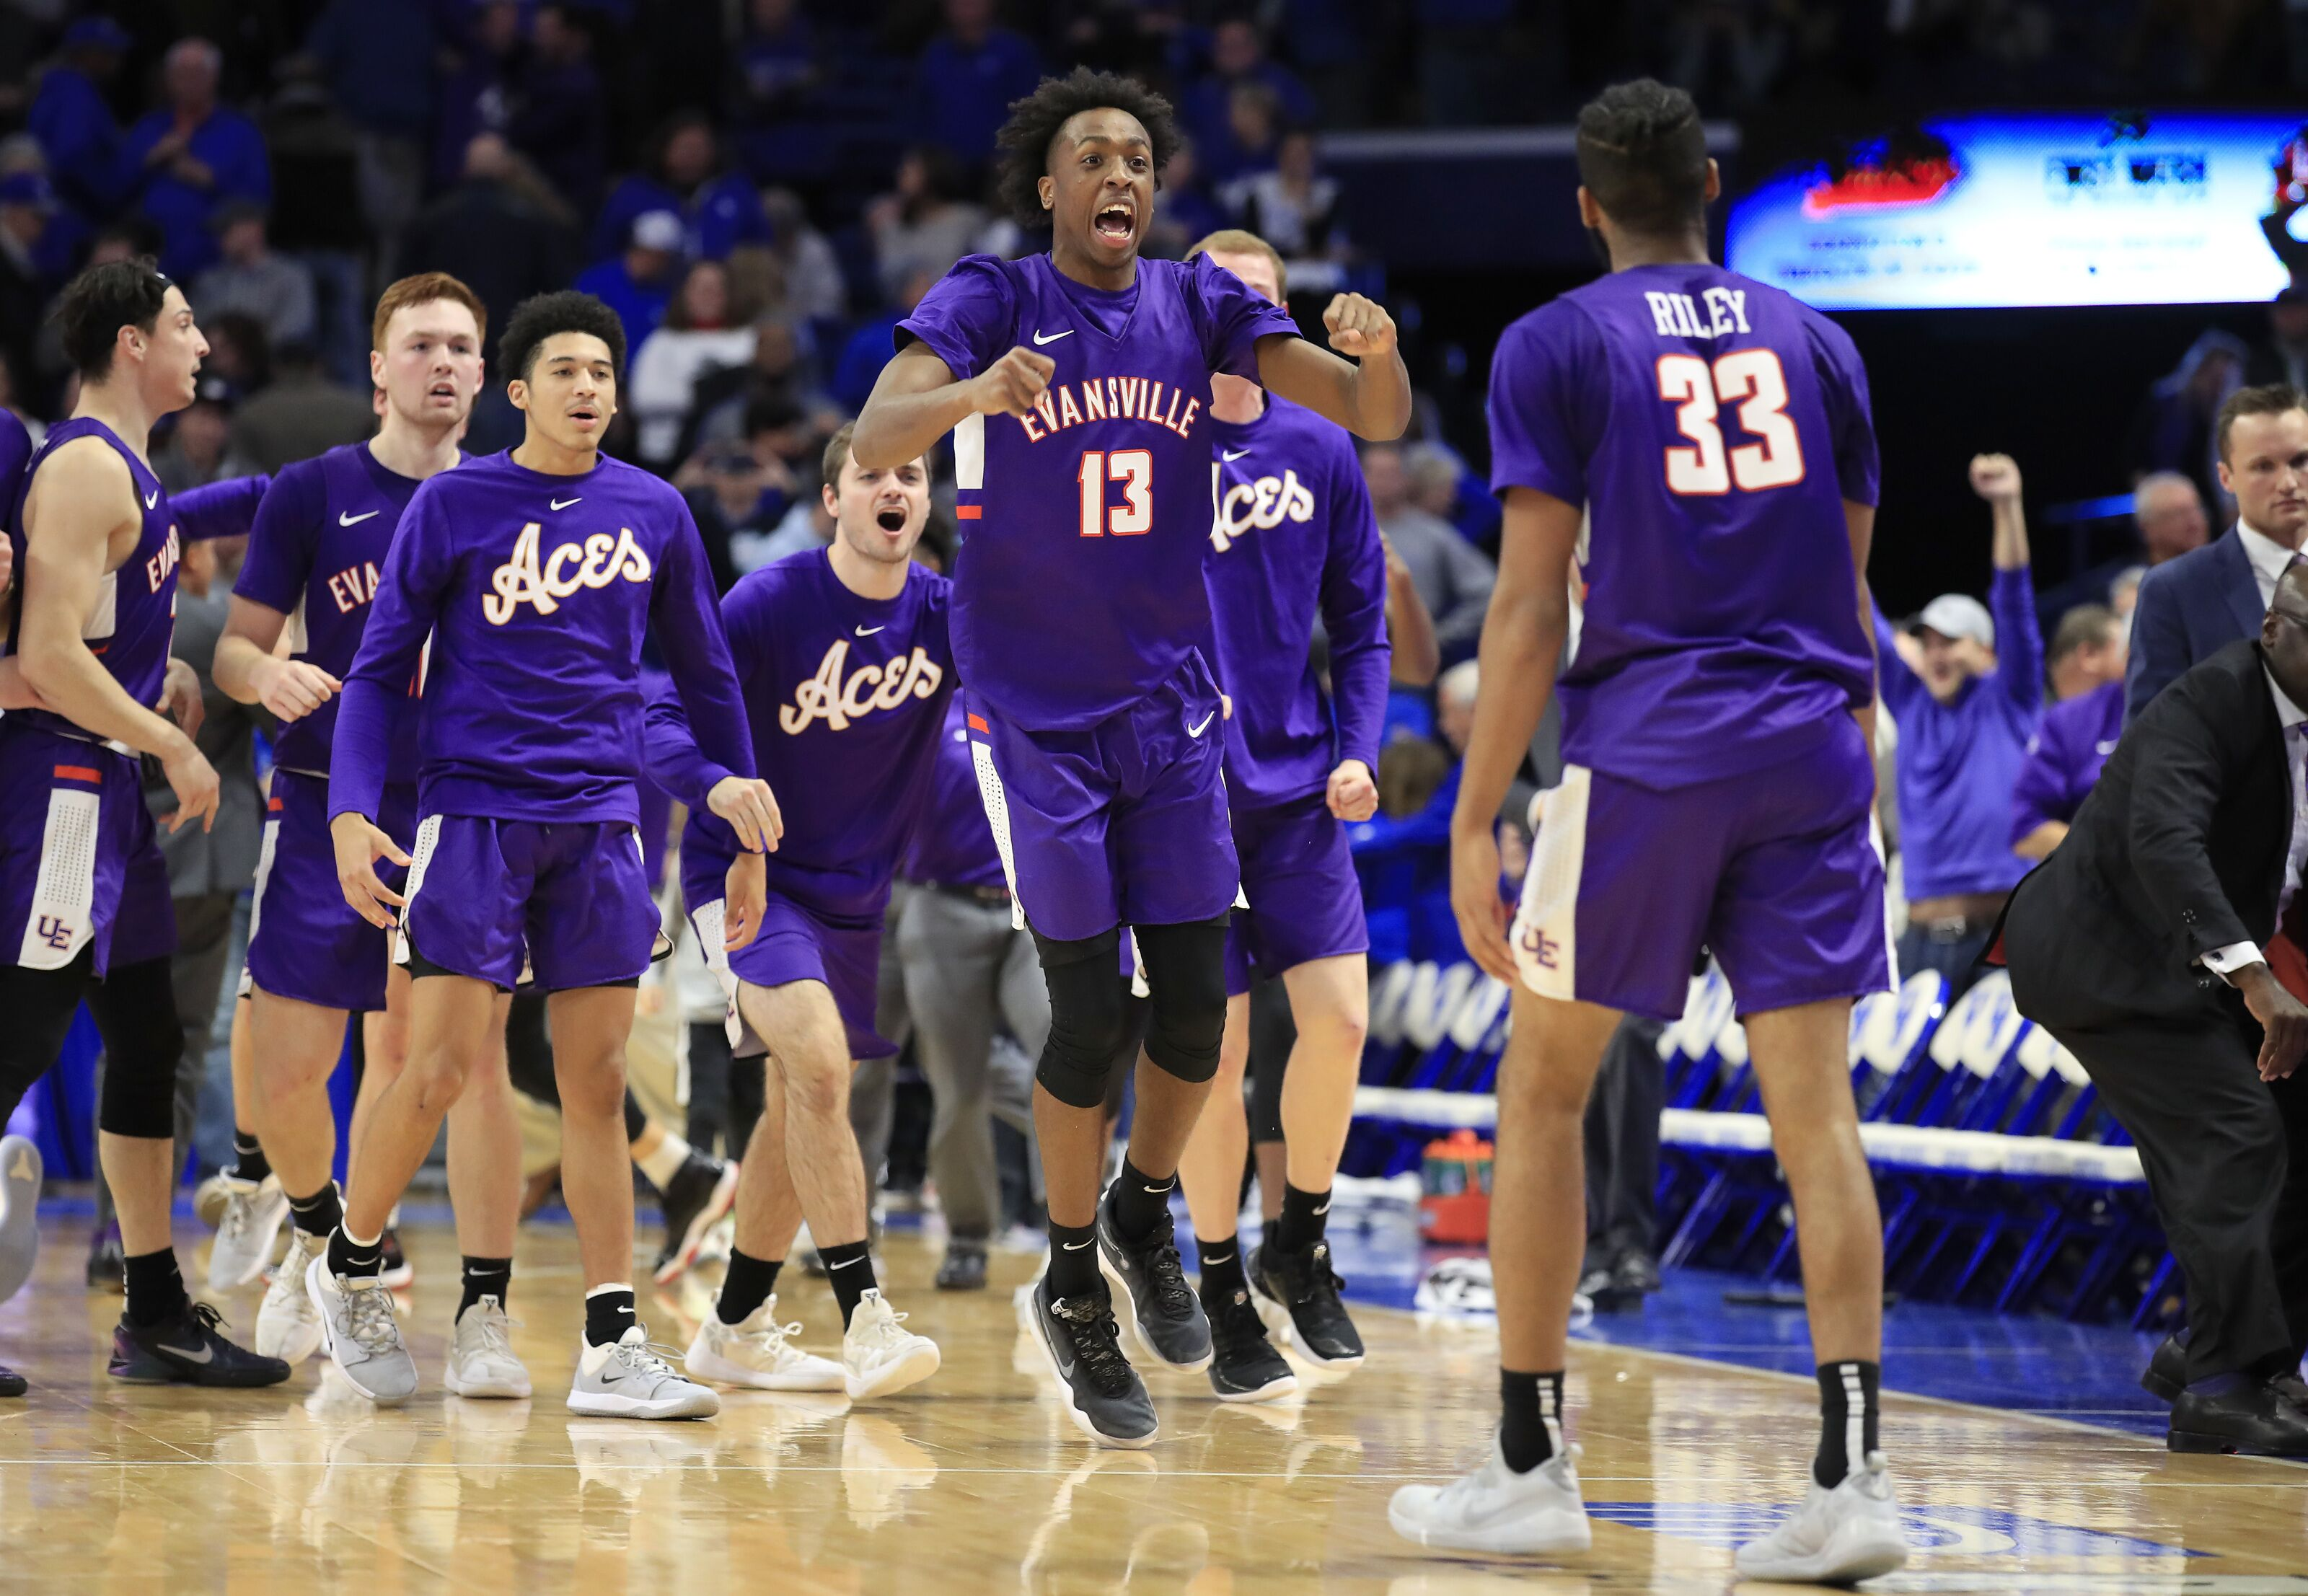 Ncaa Basketball Will Evansville Become Mid Major Star Of